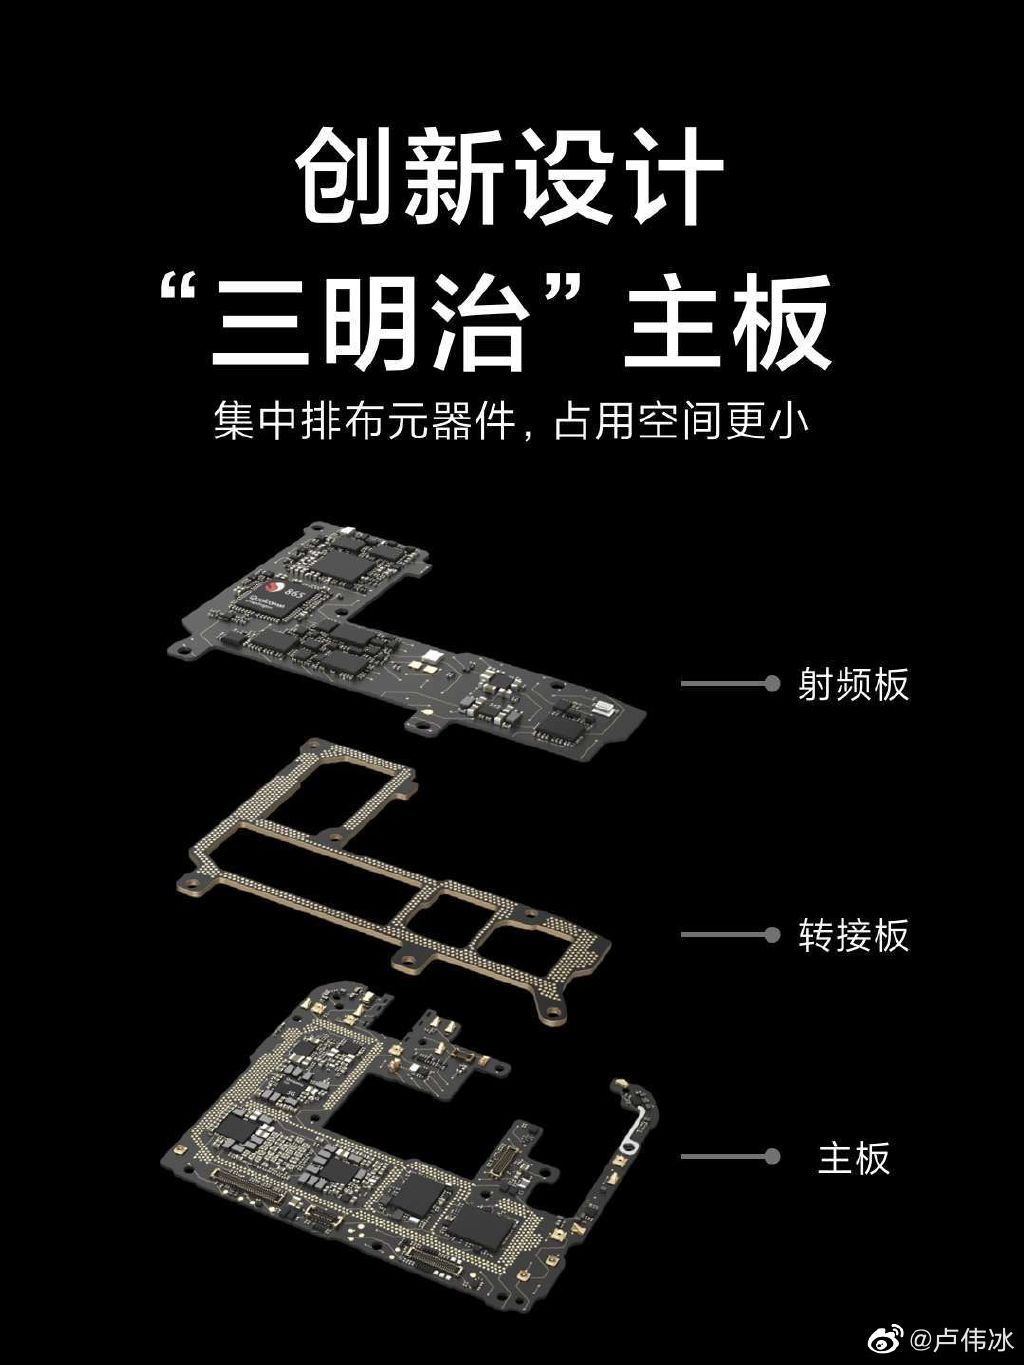 Redmi K30 Pro crams 61 components per sq centimeter with 'Stacked Motherboard' design 3